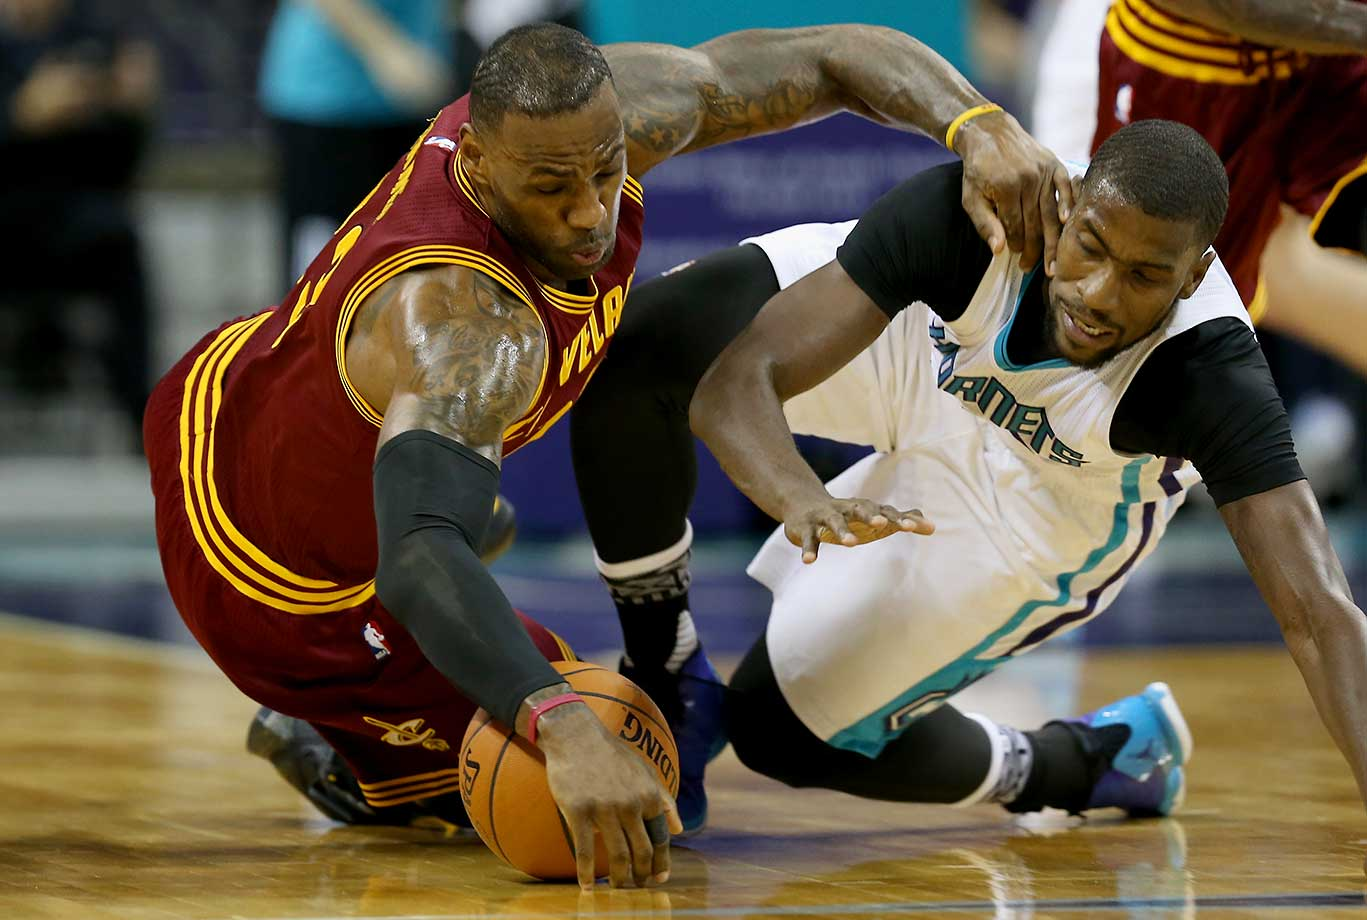 Here are some of the images that caught our eye on the sports night of Feb. 3, starting with LeBron James diving for a loose ball against Michael Kidd-Gilchrist of the Charlotte Hornets at Time Warner Cable Arena in North Carolina.